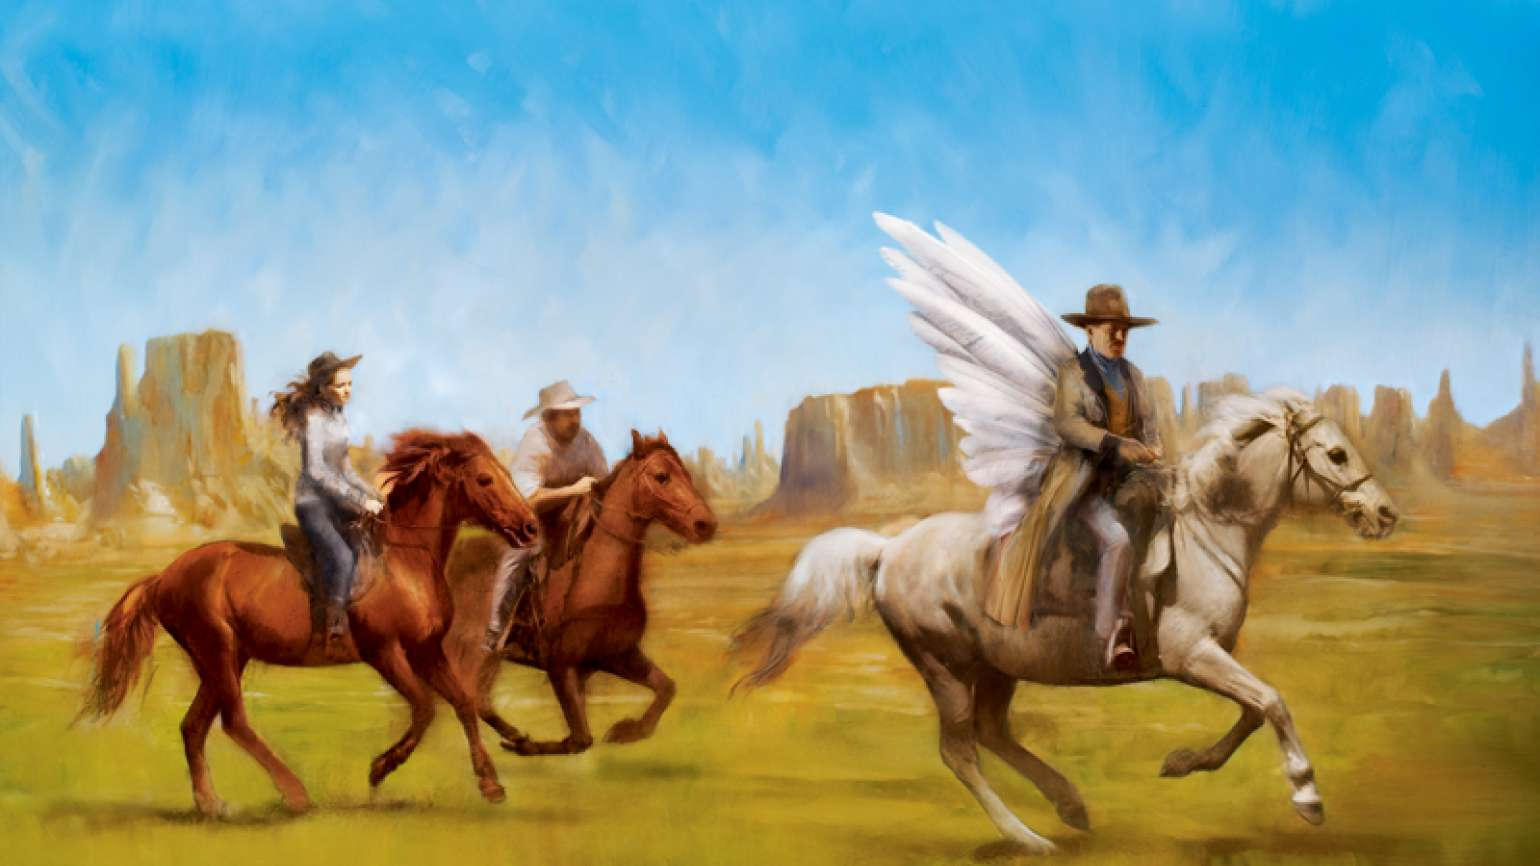 An artist's rendering of Erika and an angelic cowboy on horseback